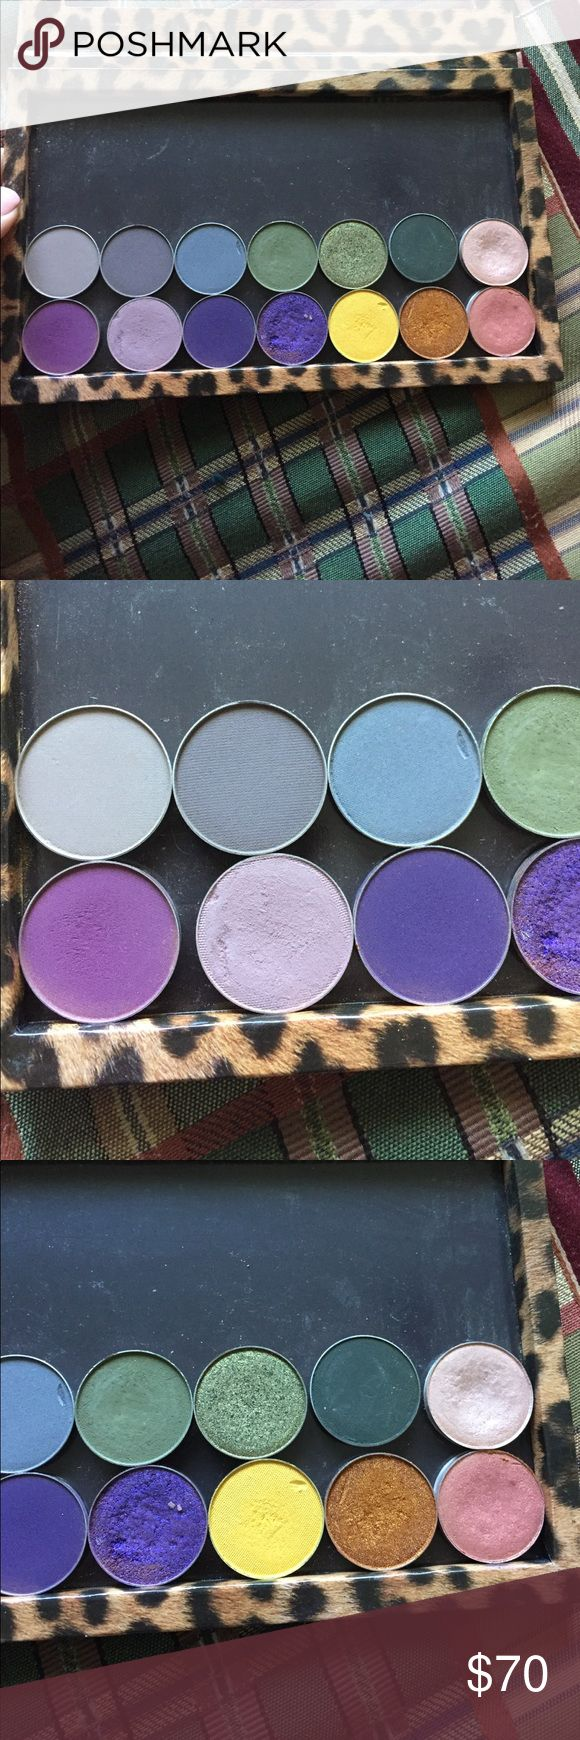 MAC/makeup geek eyeshaodws L TO R: Bedrock, concrete jungle, stealth, dirty martini, jester, enchanted forest, naked lunch, curfew, unexpected, Motown, Caitlin rose, lemon drop, untamed, expensive pink. MAC Cosmetics Makeup Eyeshadow